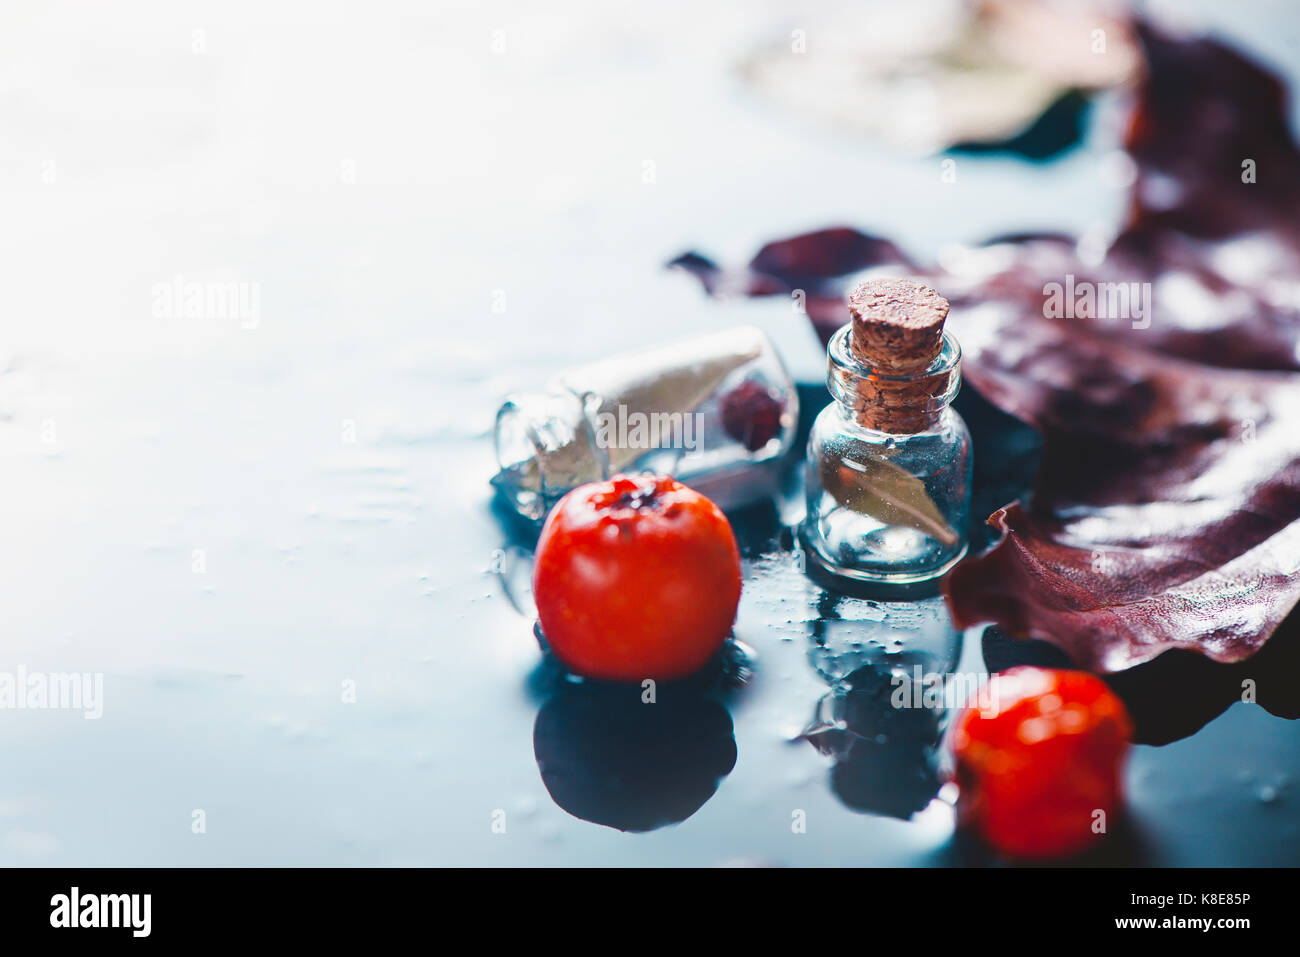 Rainy autumn still life with fallen eaves, red berries and water drops on a stone background - Stock Image